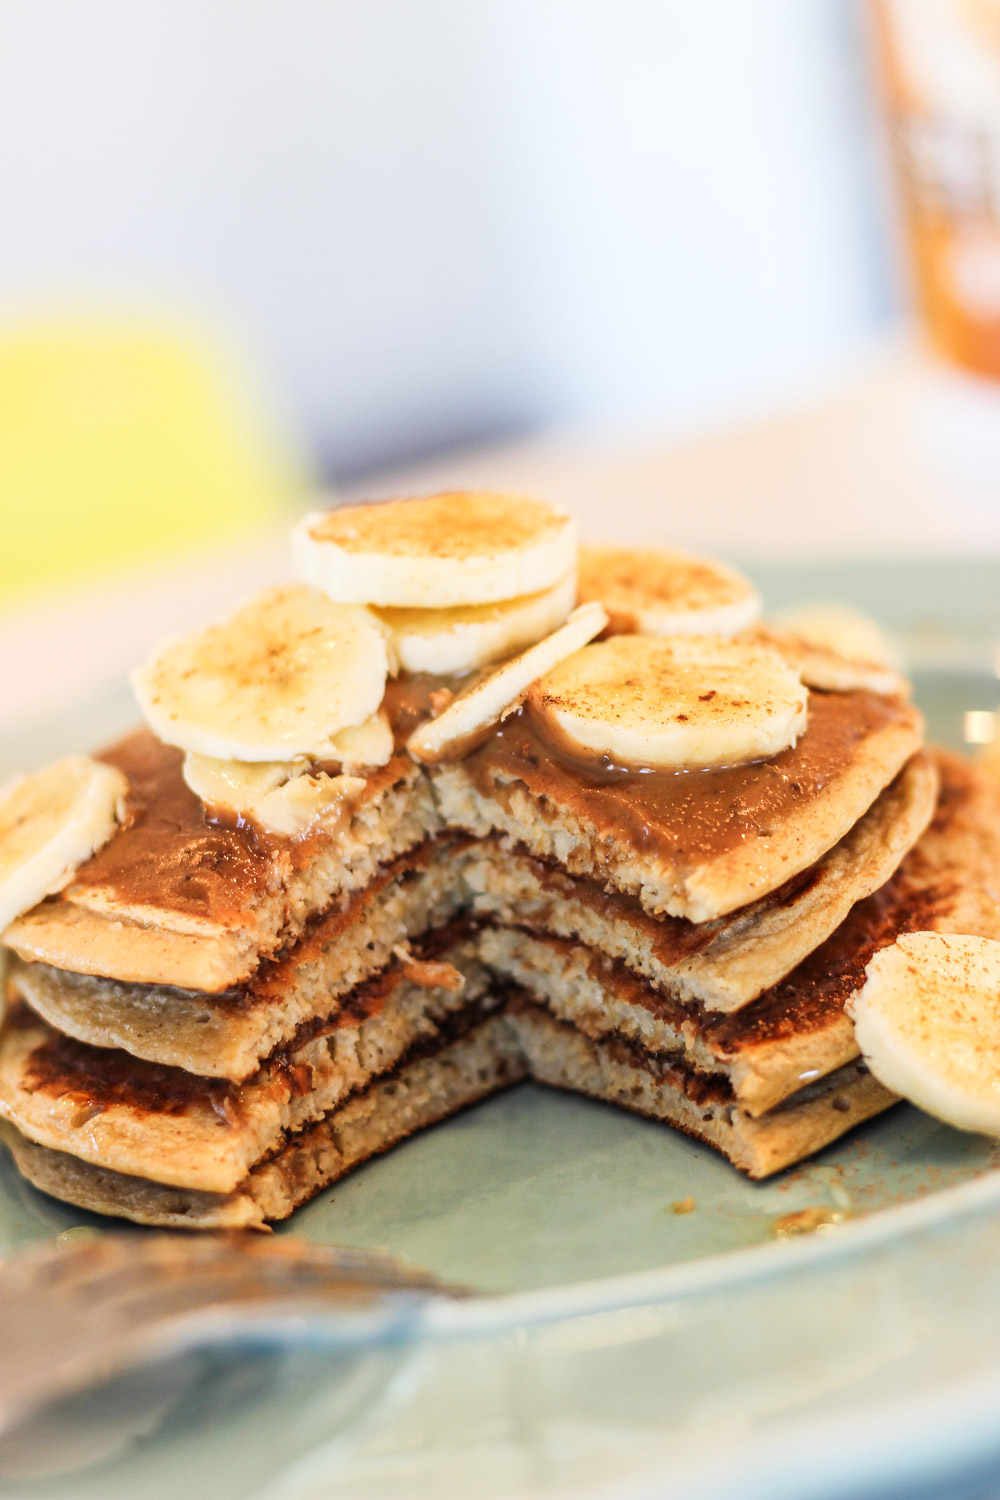 Quest cinnamon crunch protein pancakes now you tell me have you ever tried protein pancakes or any quest products ccuart Images